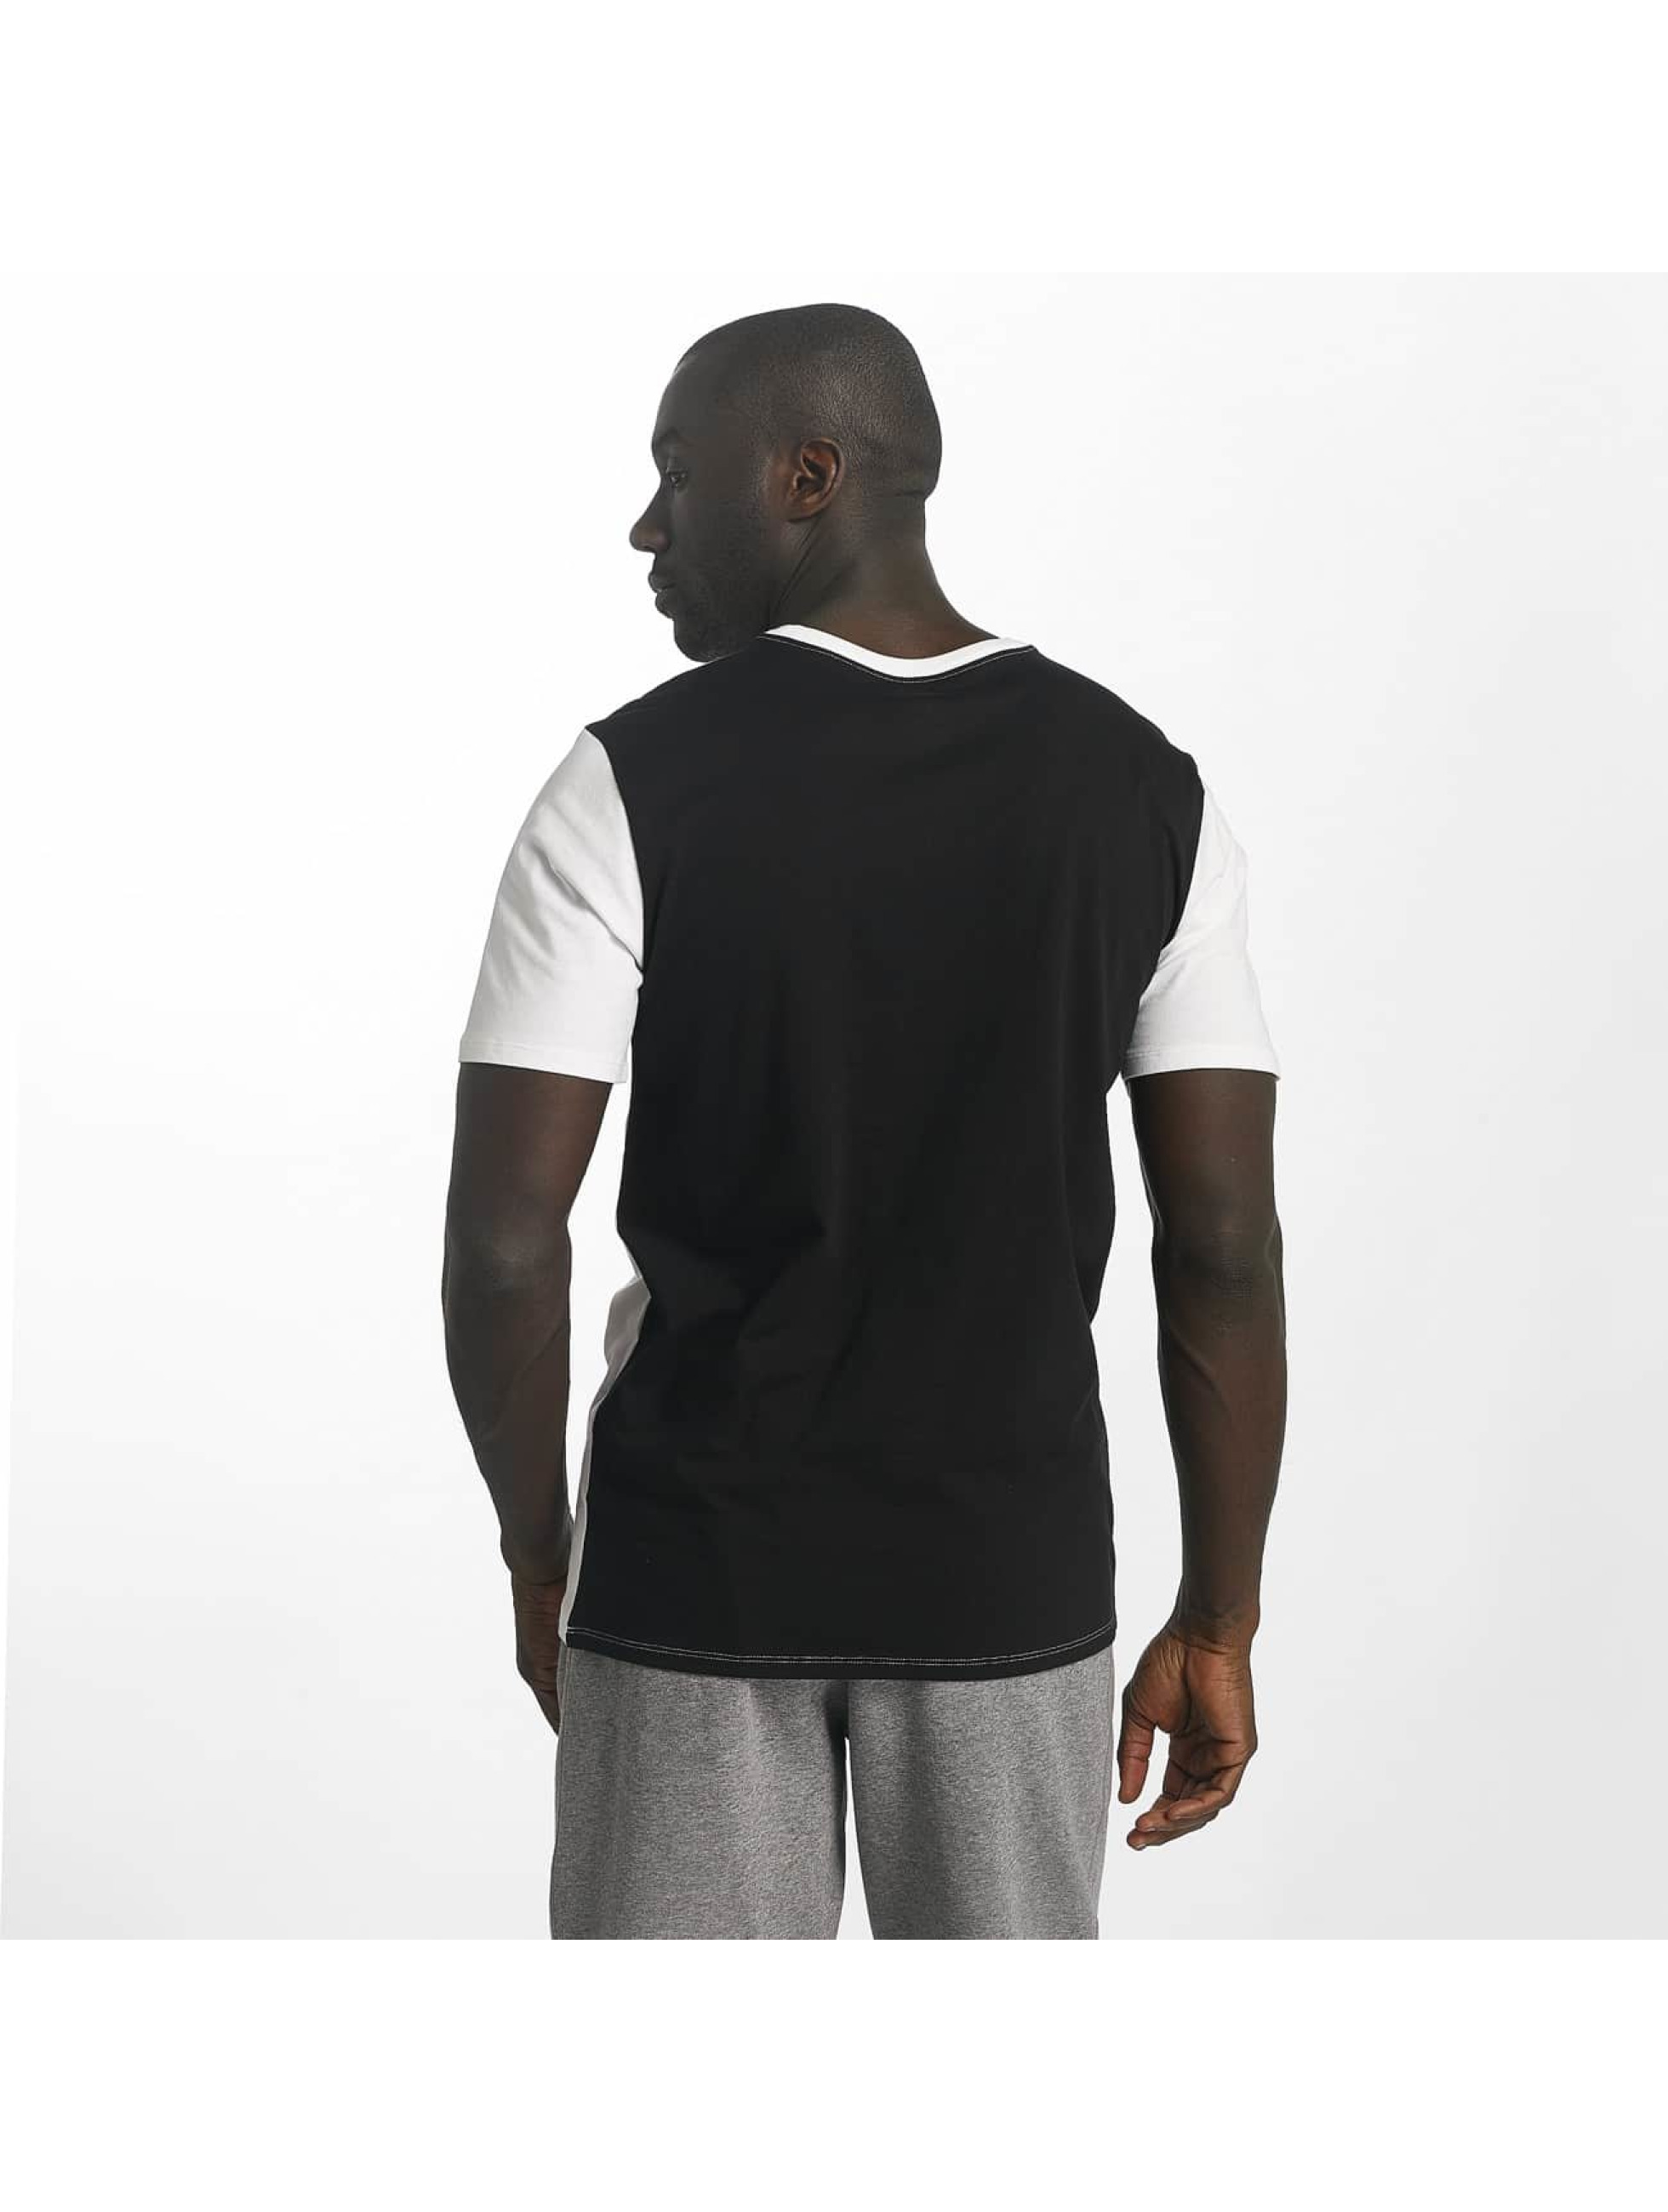 Jordan t-shirt Jumpman Air Gx wit